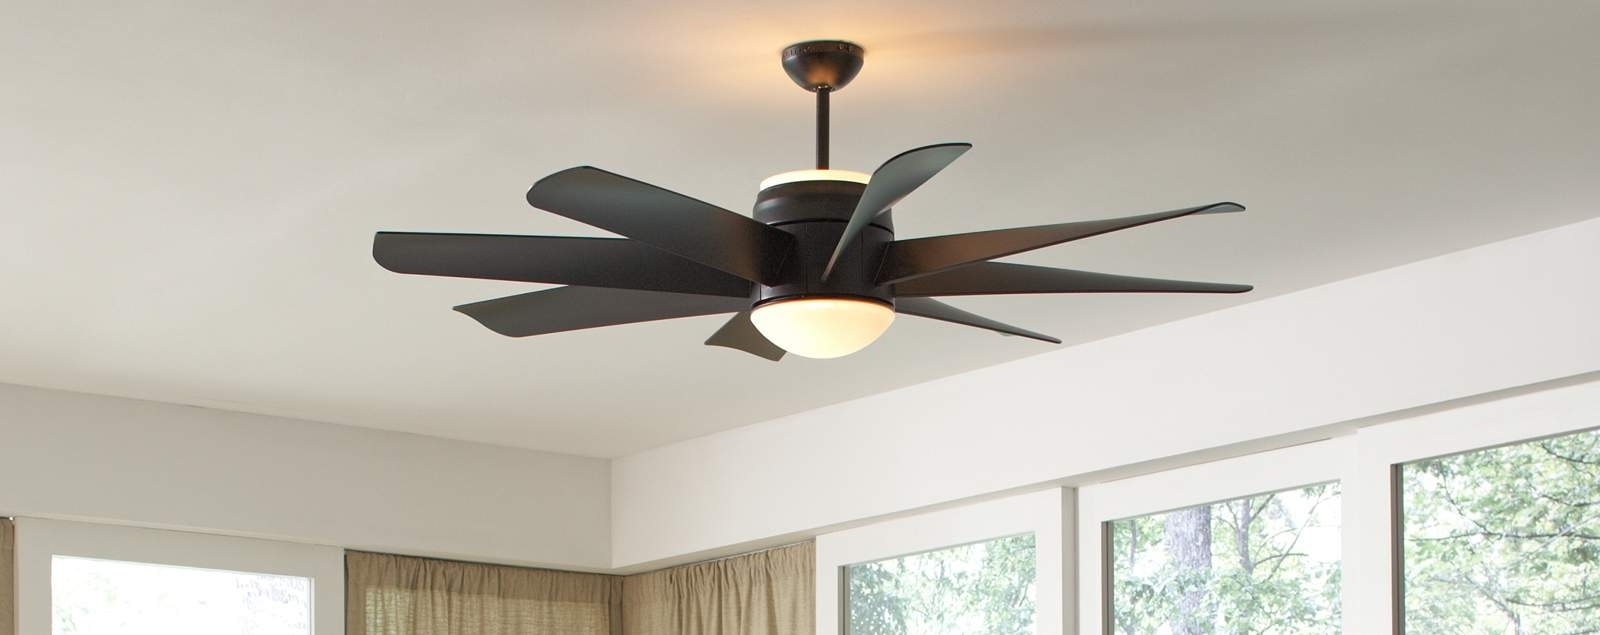 Ceiling Fan With Uplight With Regard To Well Liked Outdoor Ceiling Fans With Uplights (View 5 of 20)